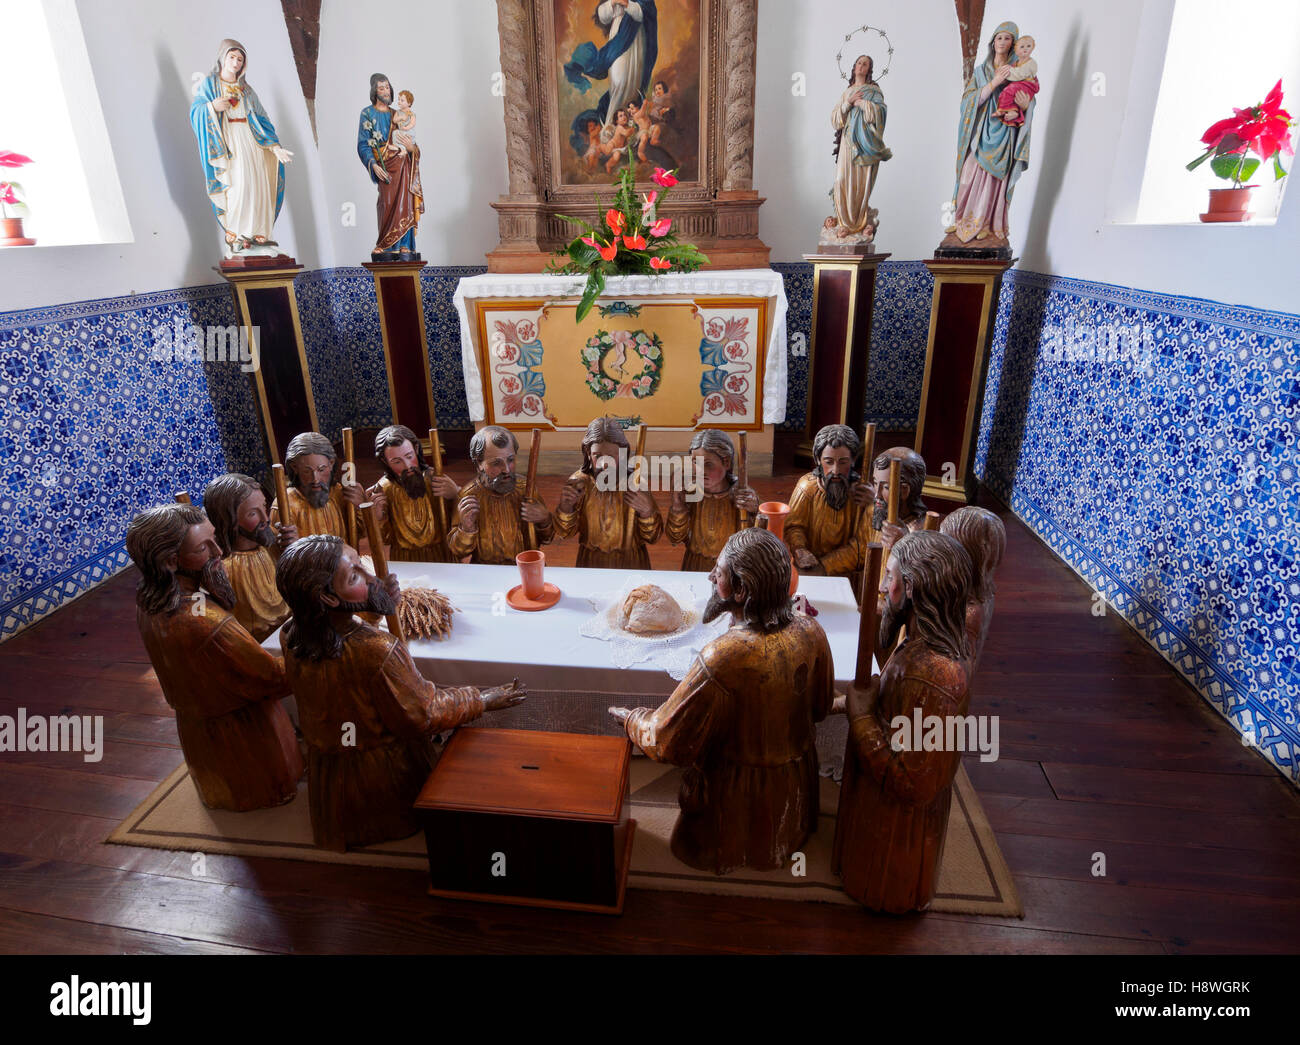 Portugal, Madeira Islands, Porto Santo, Vila Baleira, Interior view of the Church Nossa Senhora da Piedade. - Stock Image